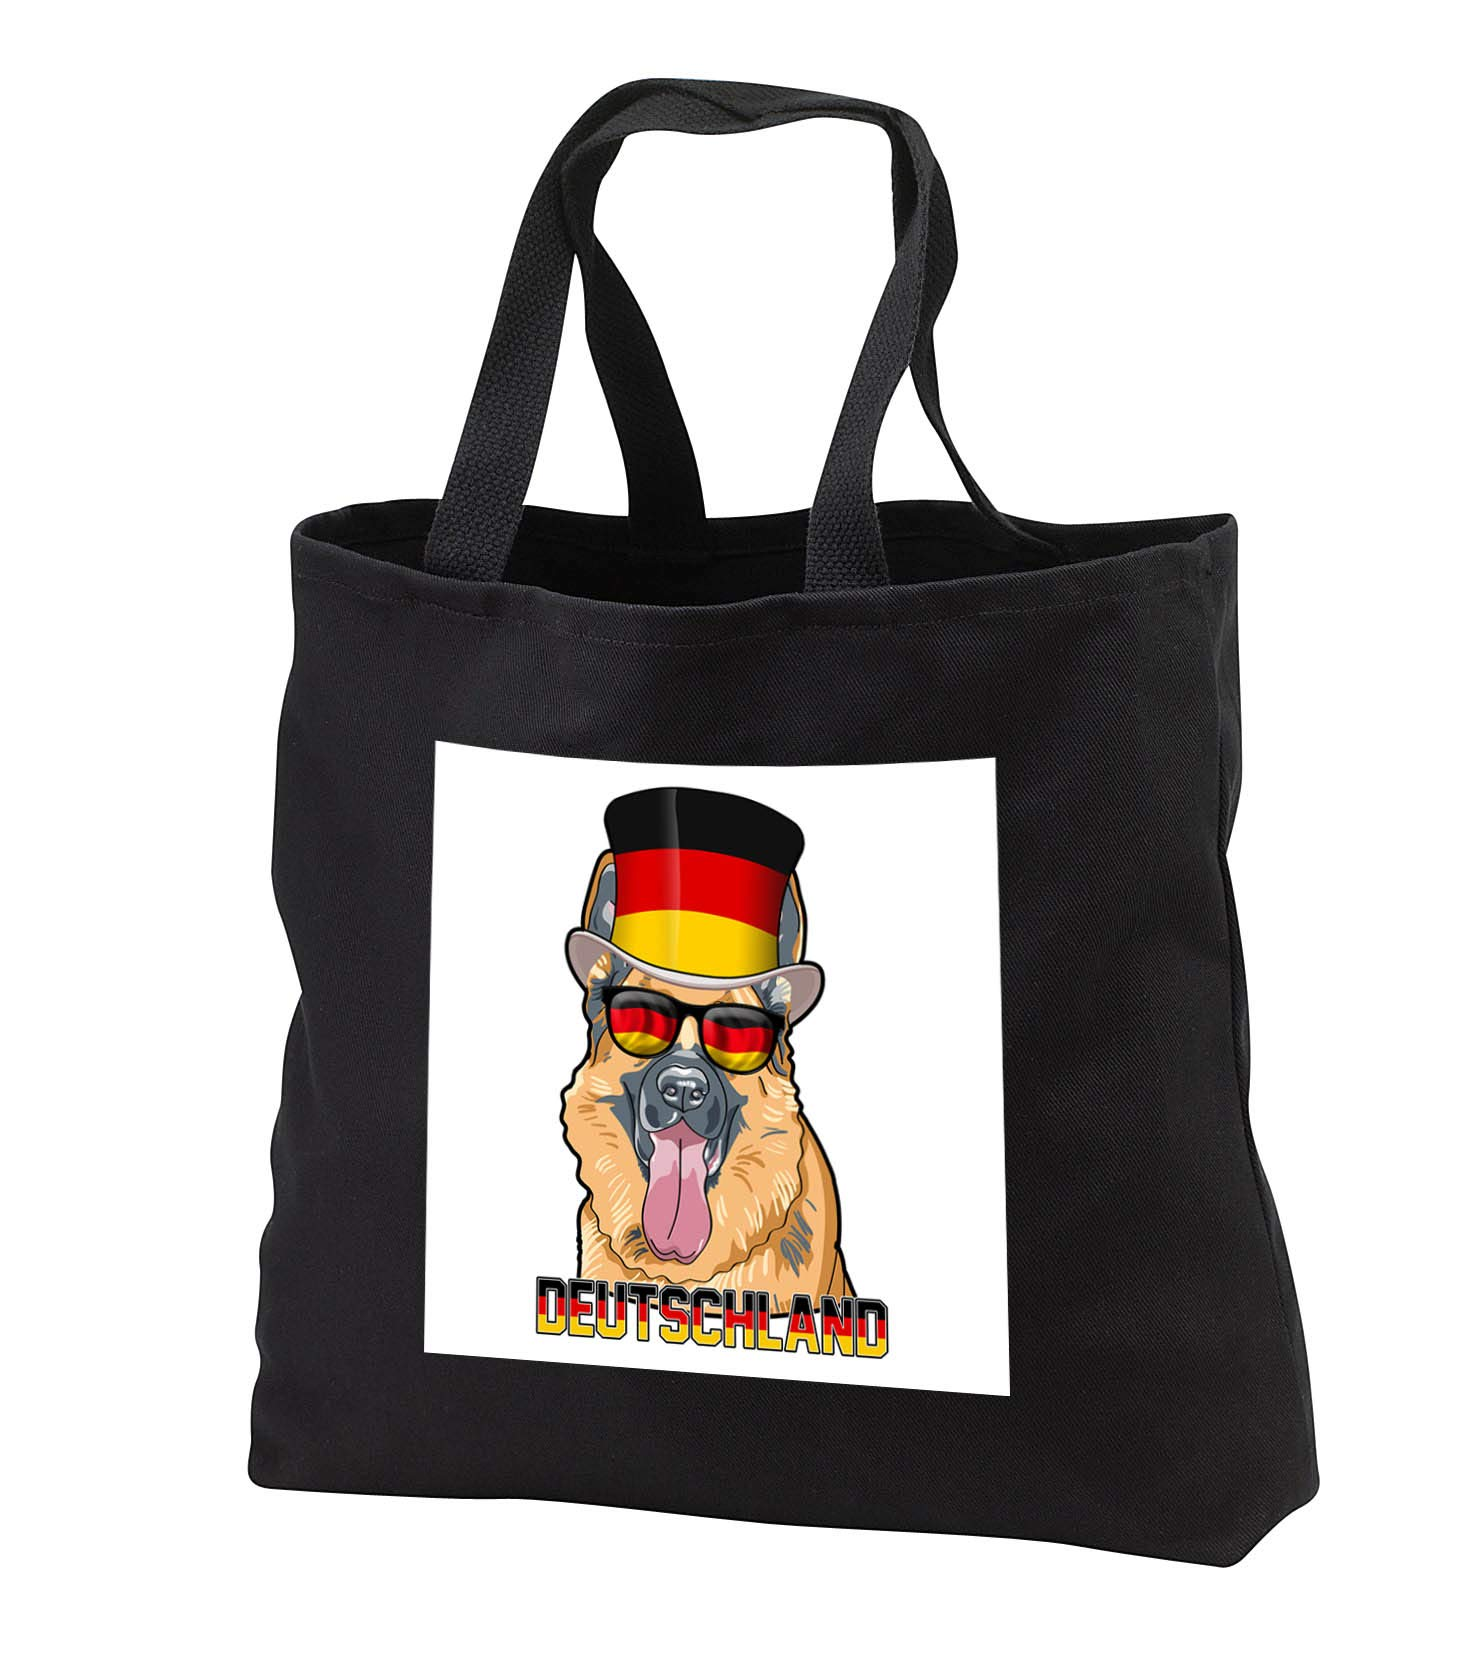 Carsten Reisinger - Illustrations - German Shepherd Dog with Germany Flag Top Hat and Sunglasses - Tote Bags - Black Tote Bag JUMBO 20w x 15h x 5d (tb_293427_3)